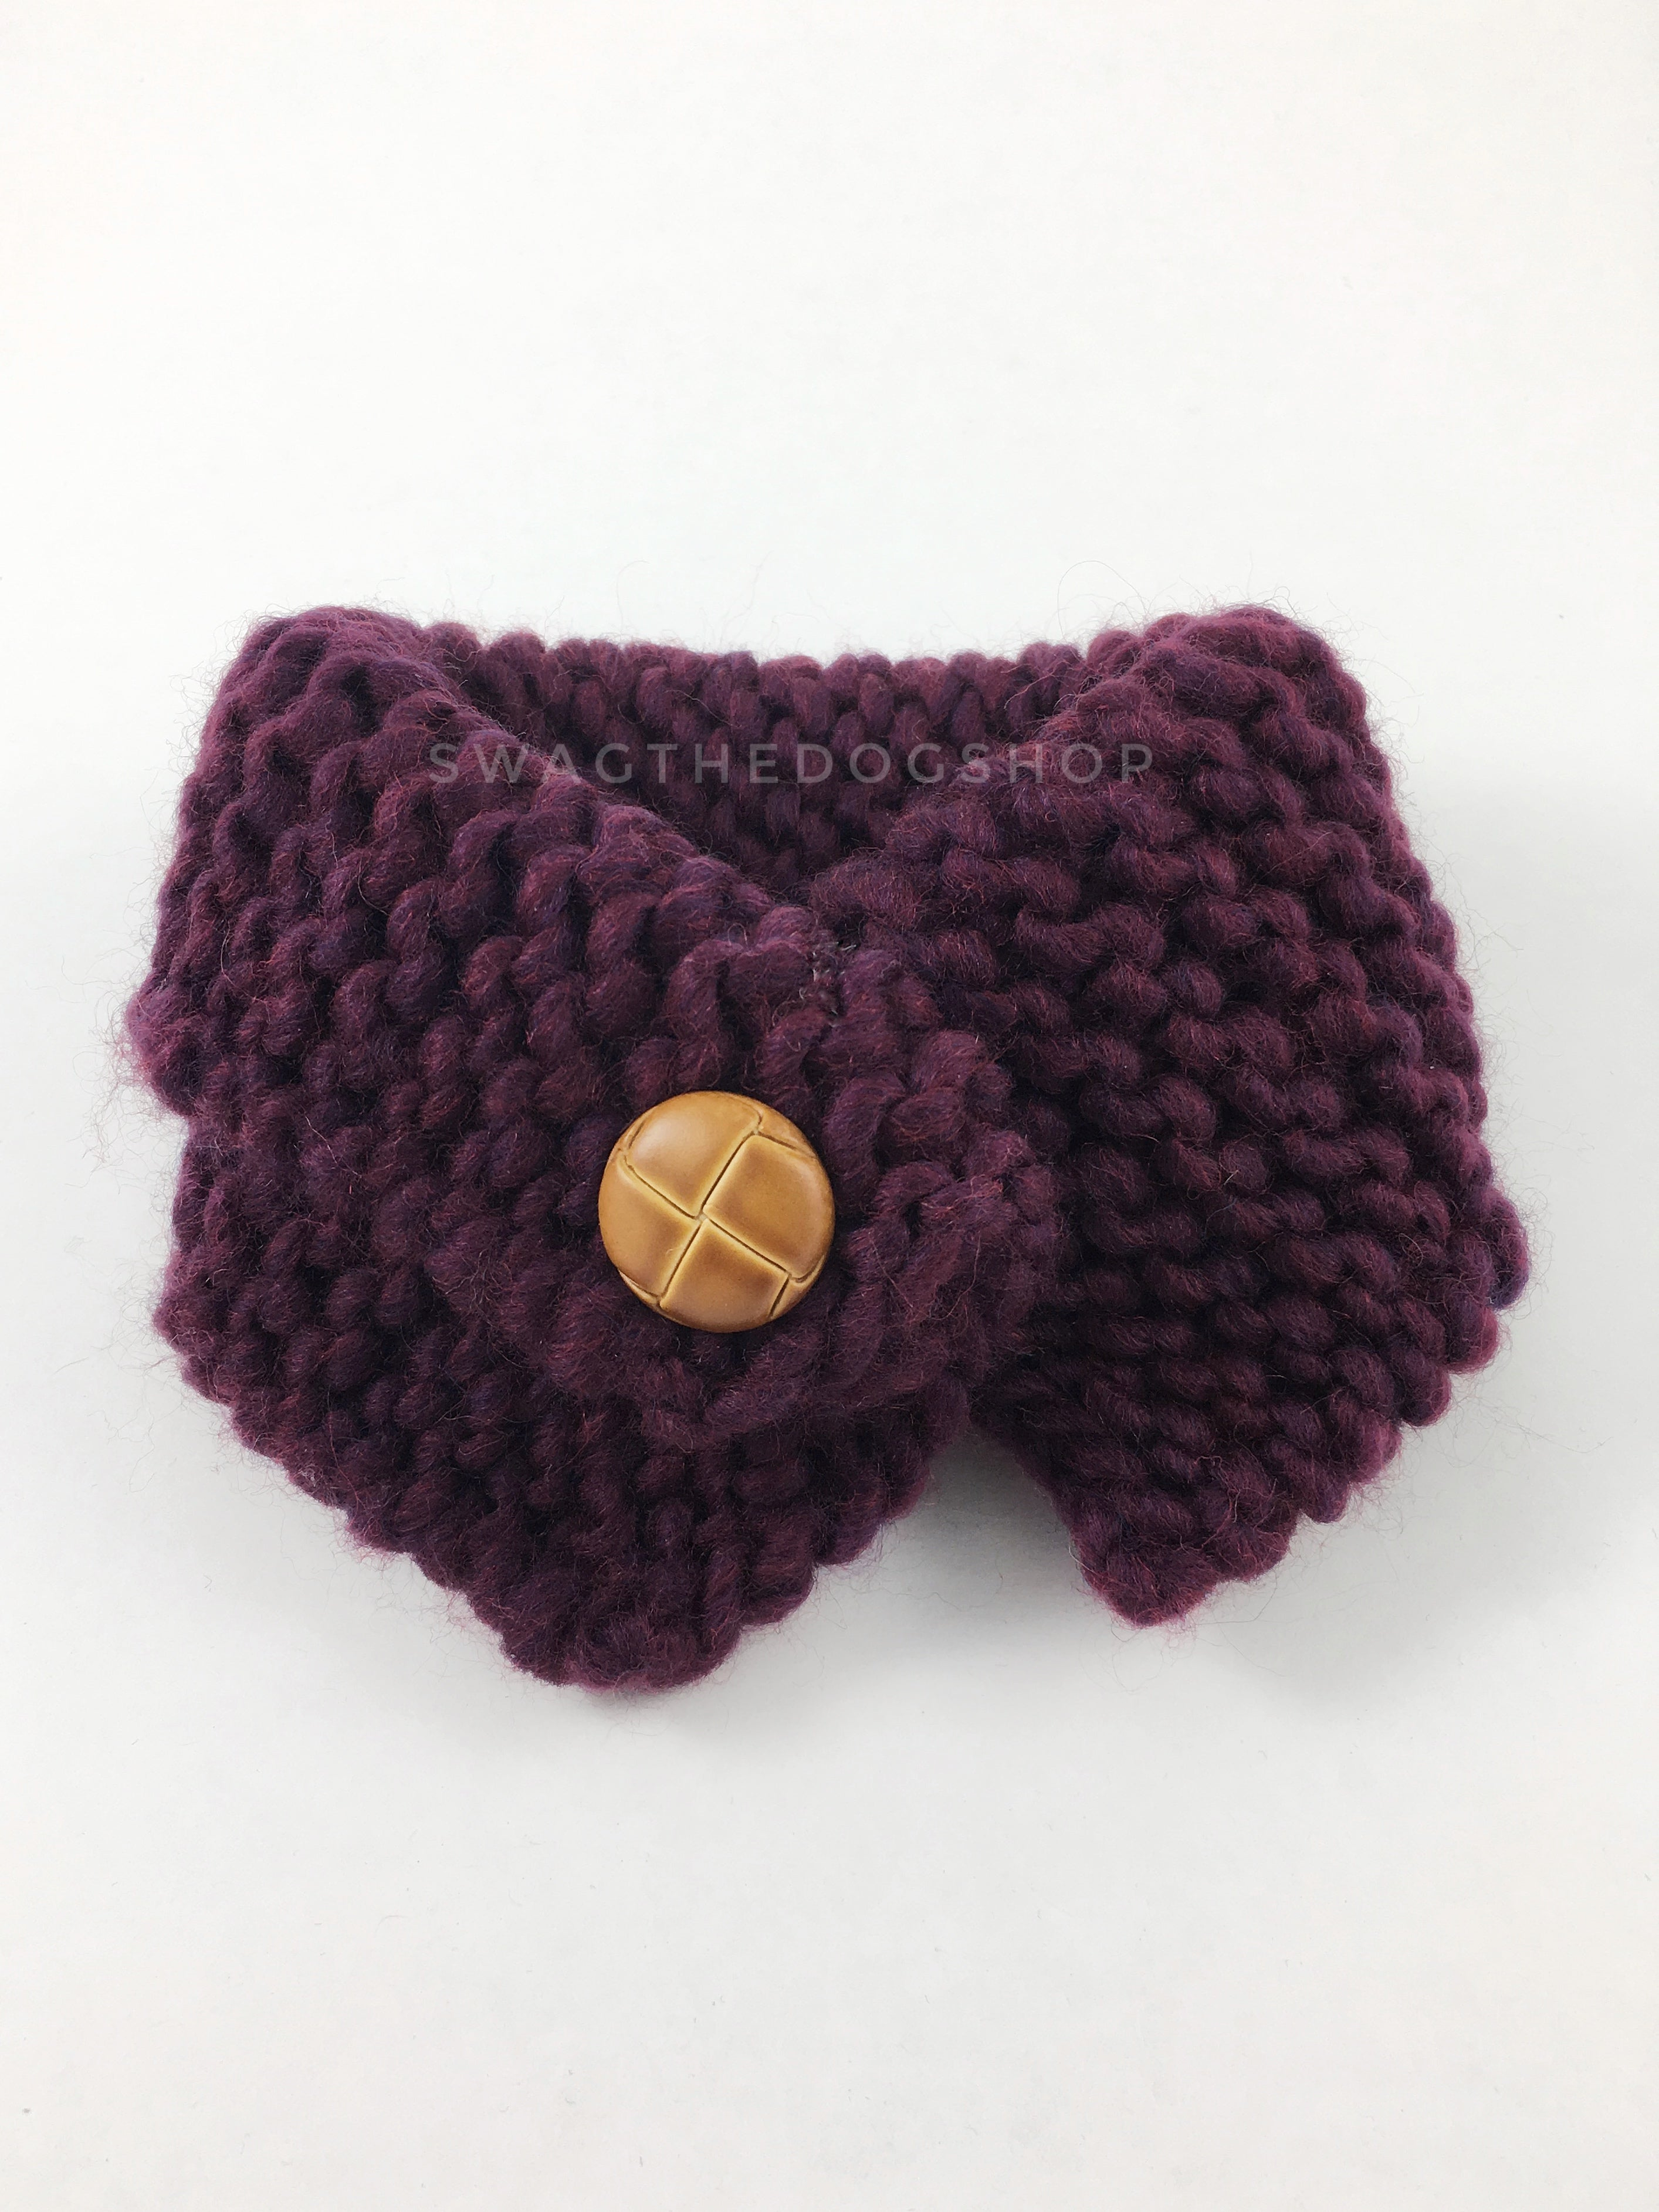 Plum Swagsnood - Product Front View. Plum Color Dog Snood with Accent Button